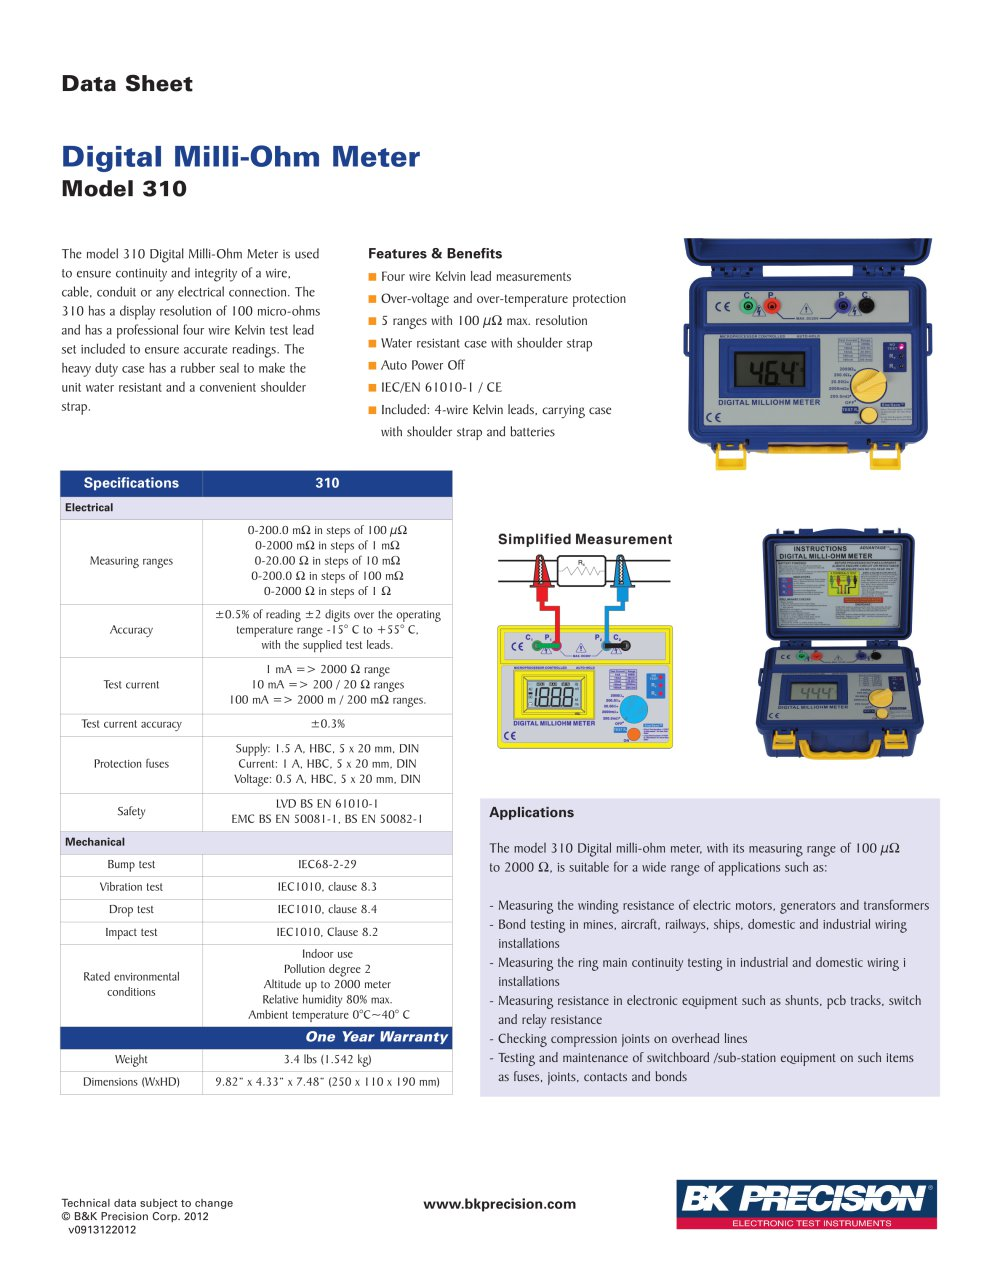 Digital Milli Ohm Meter Bk Precision Pdf Catalogue Technical Commercial And Industrial Wiring 1 Pages